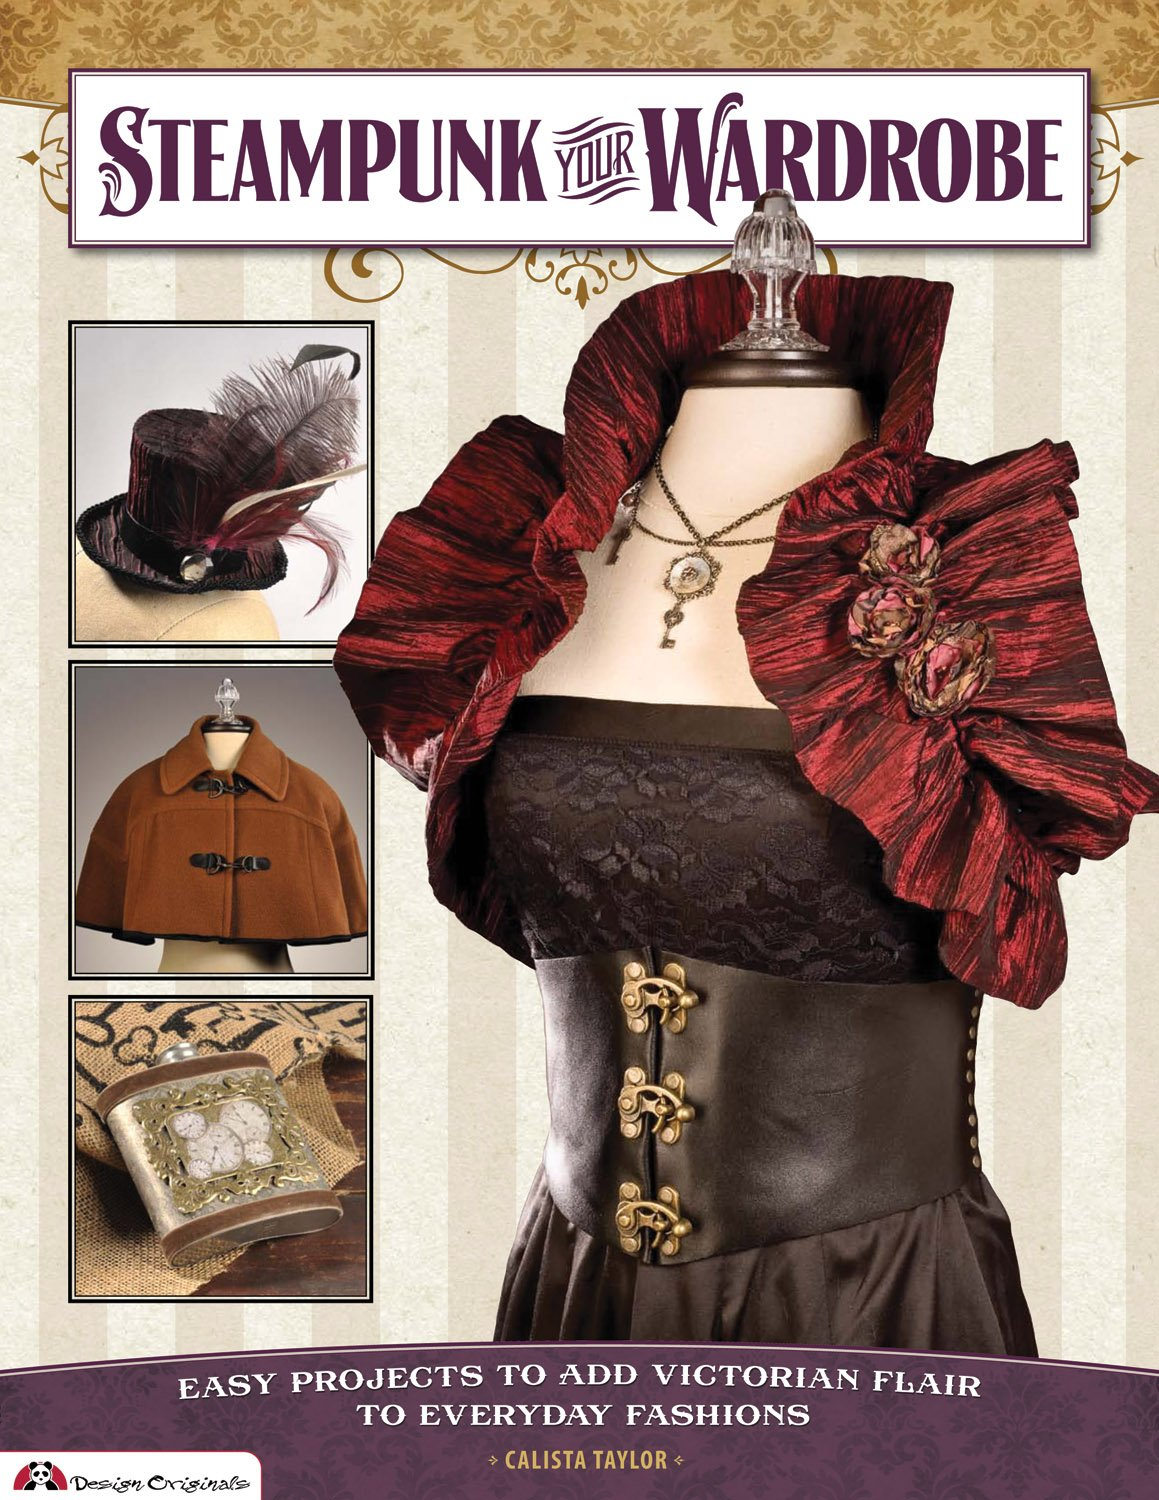 Steampunk Your Wardrobe Easy Projects To Add Victorian